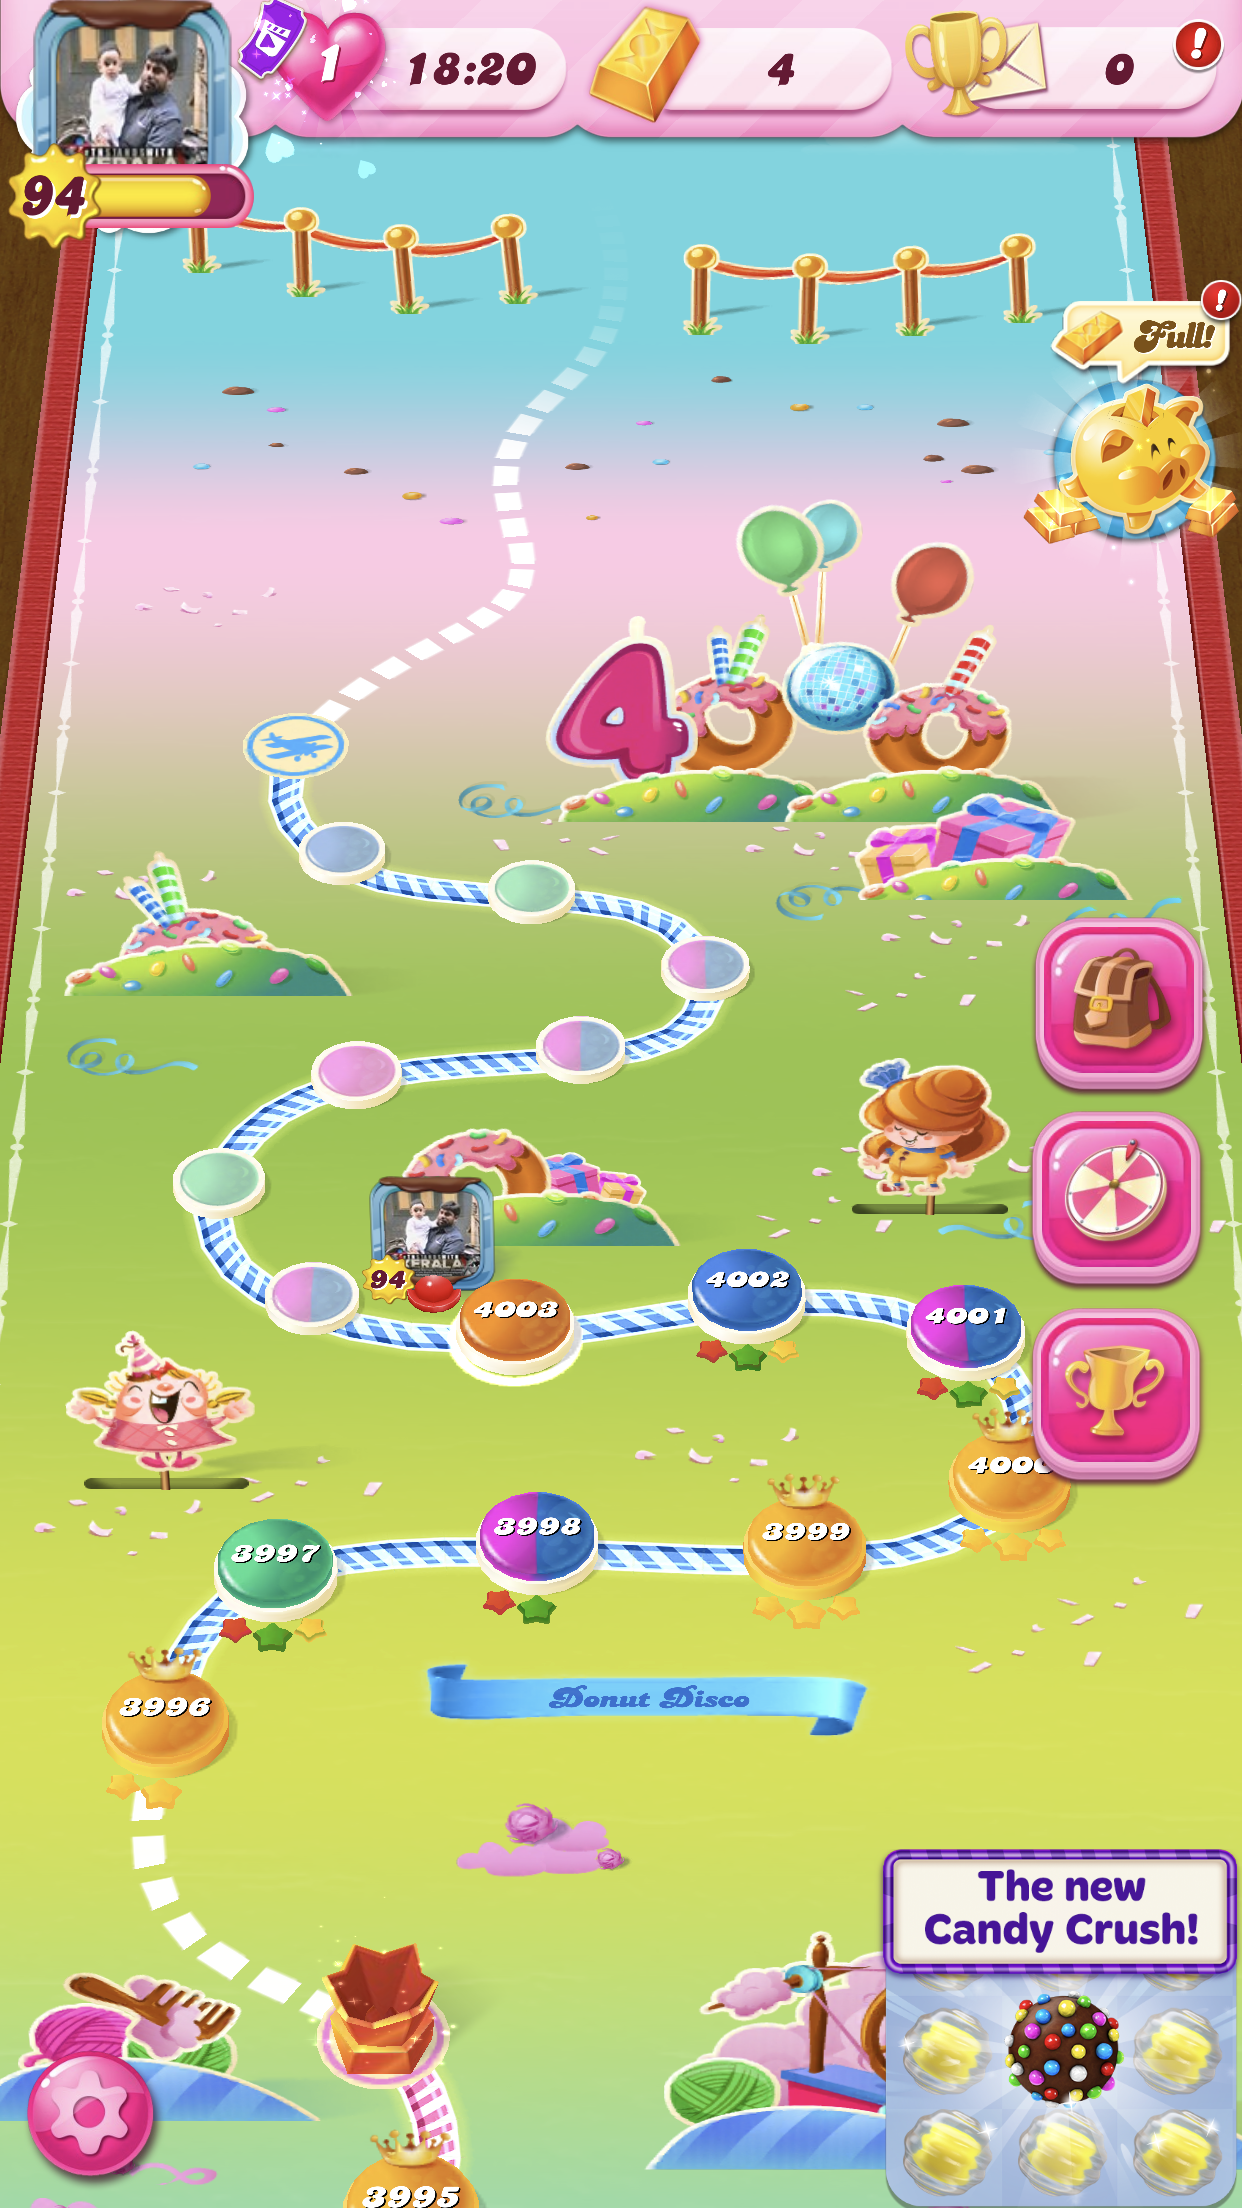 who is the highest level in candy crush saga? i passed level 3321 on